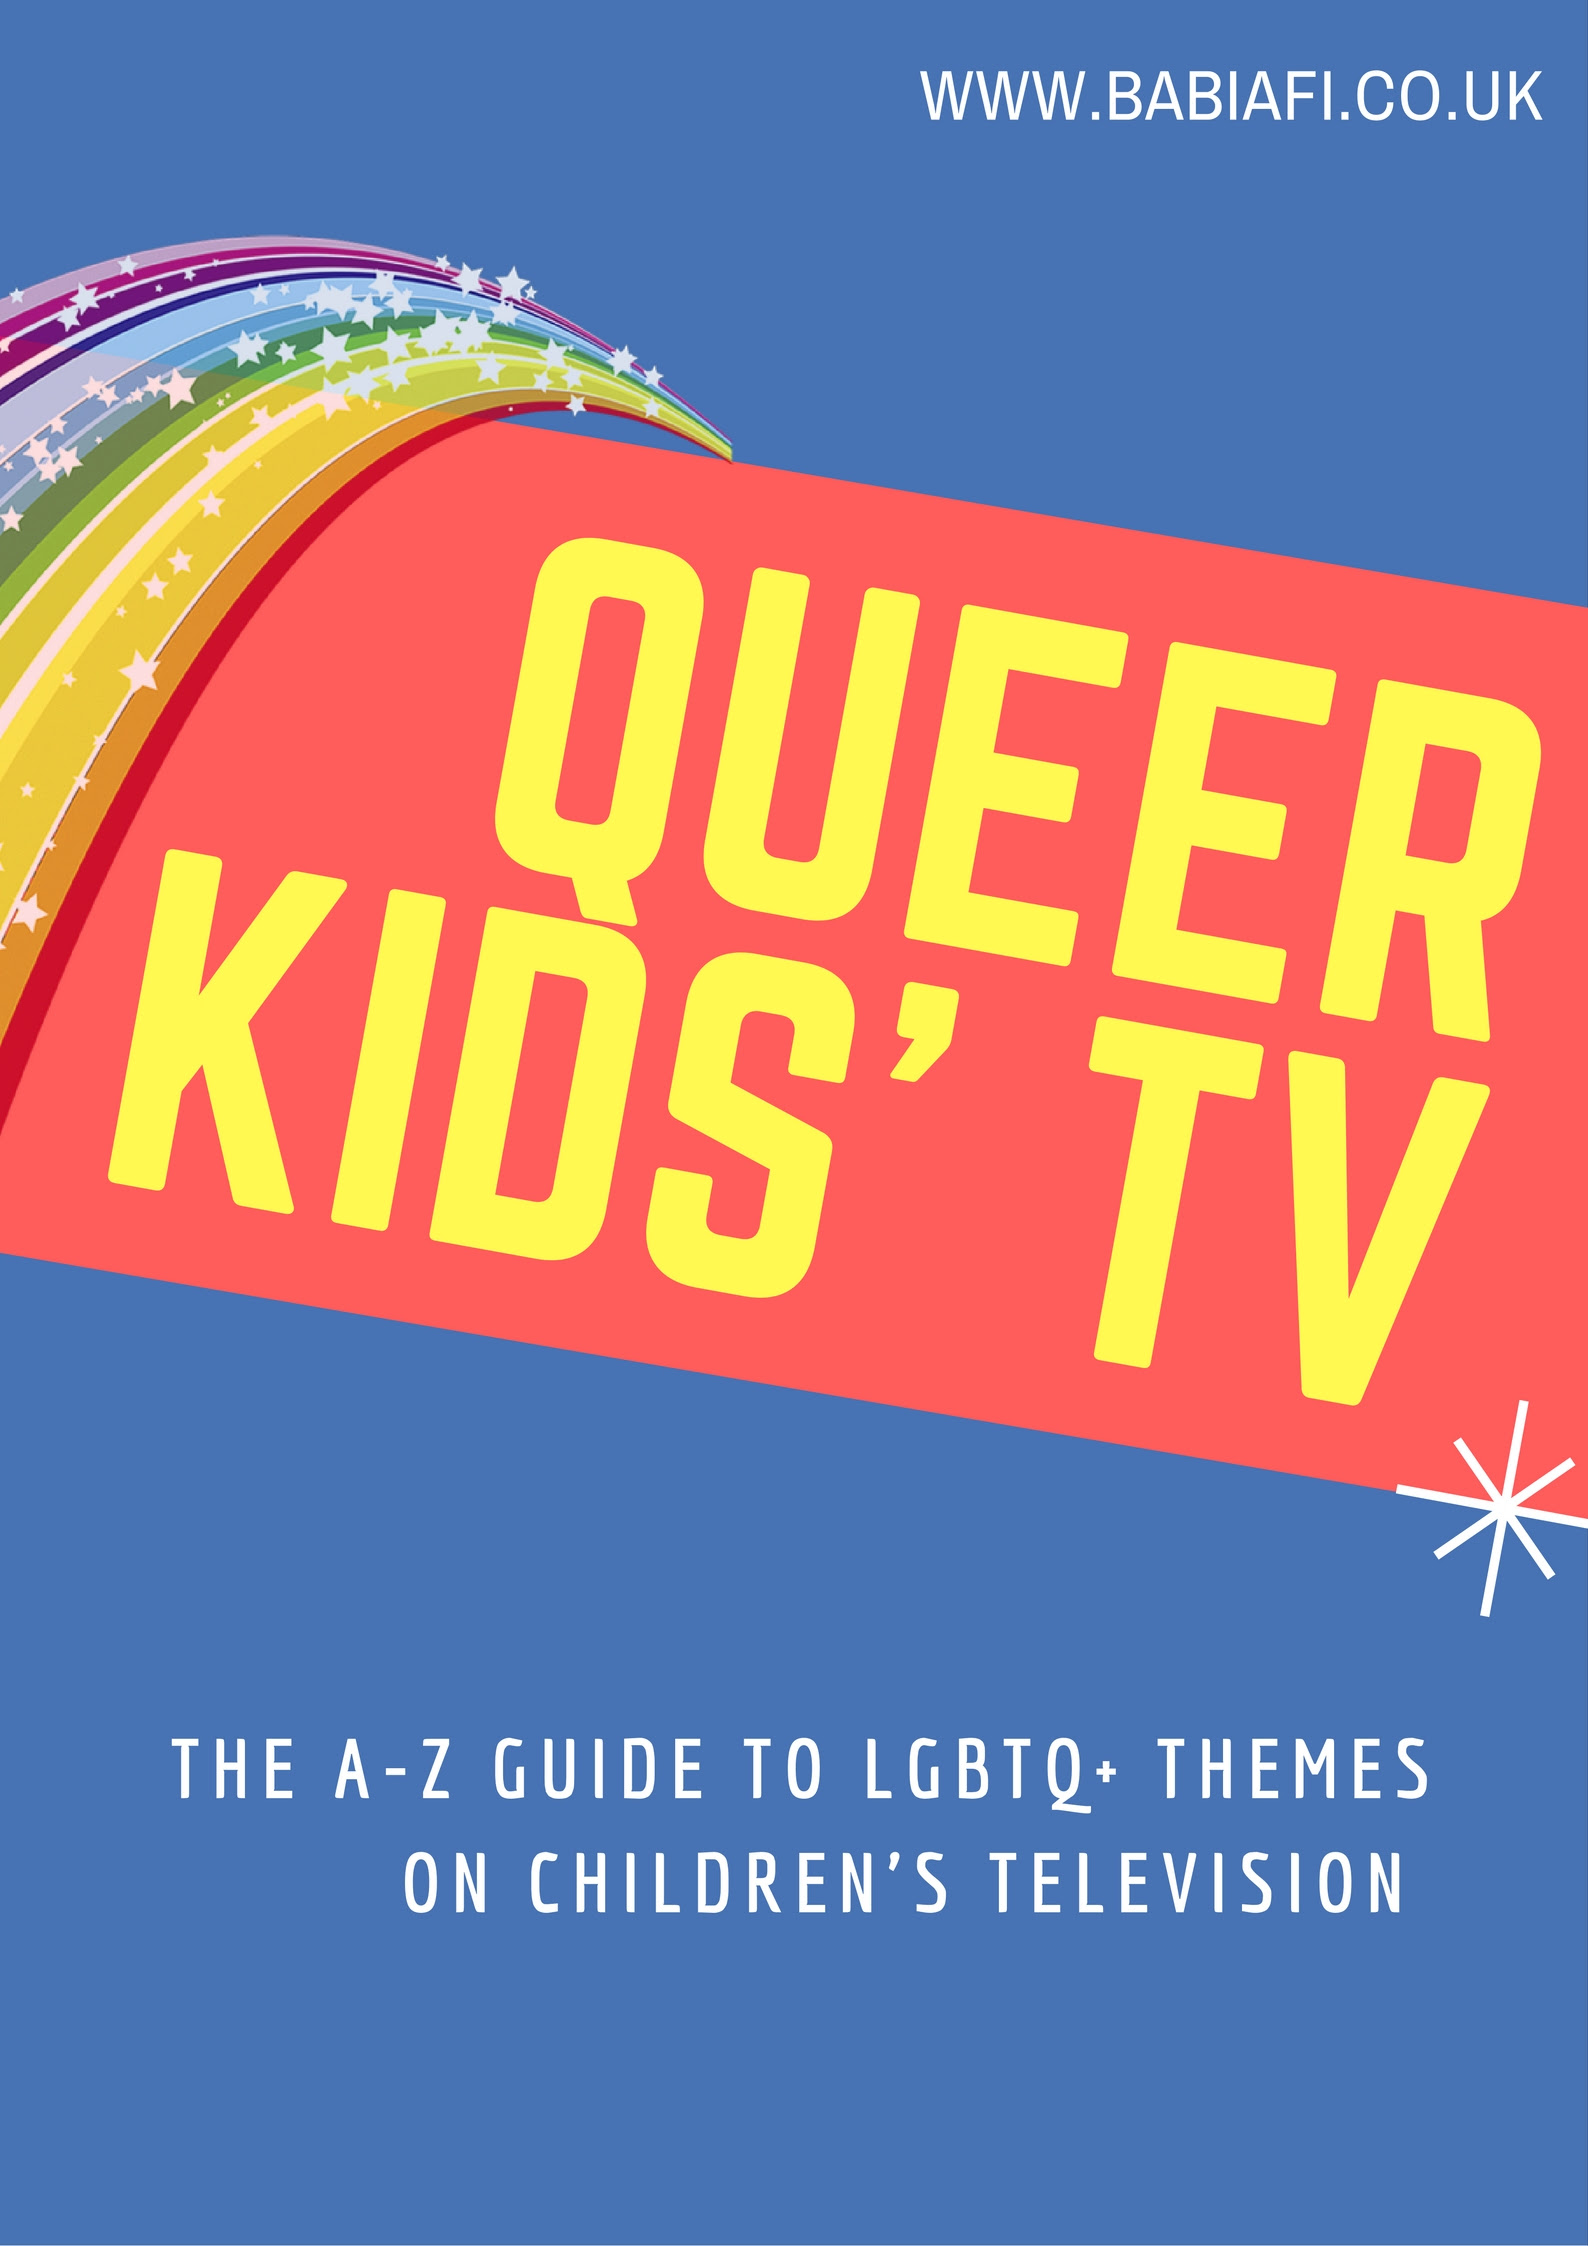 The A-Z Guide to LGBTQ+ Themes on Children's Television